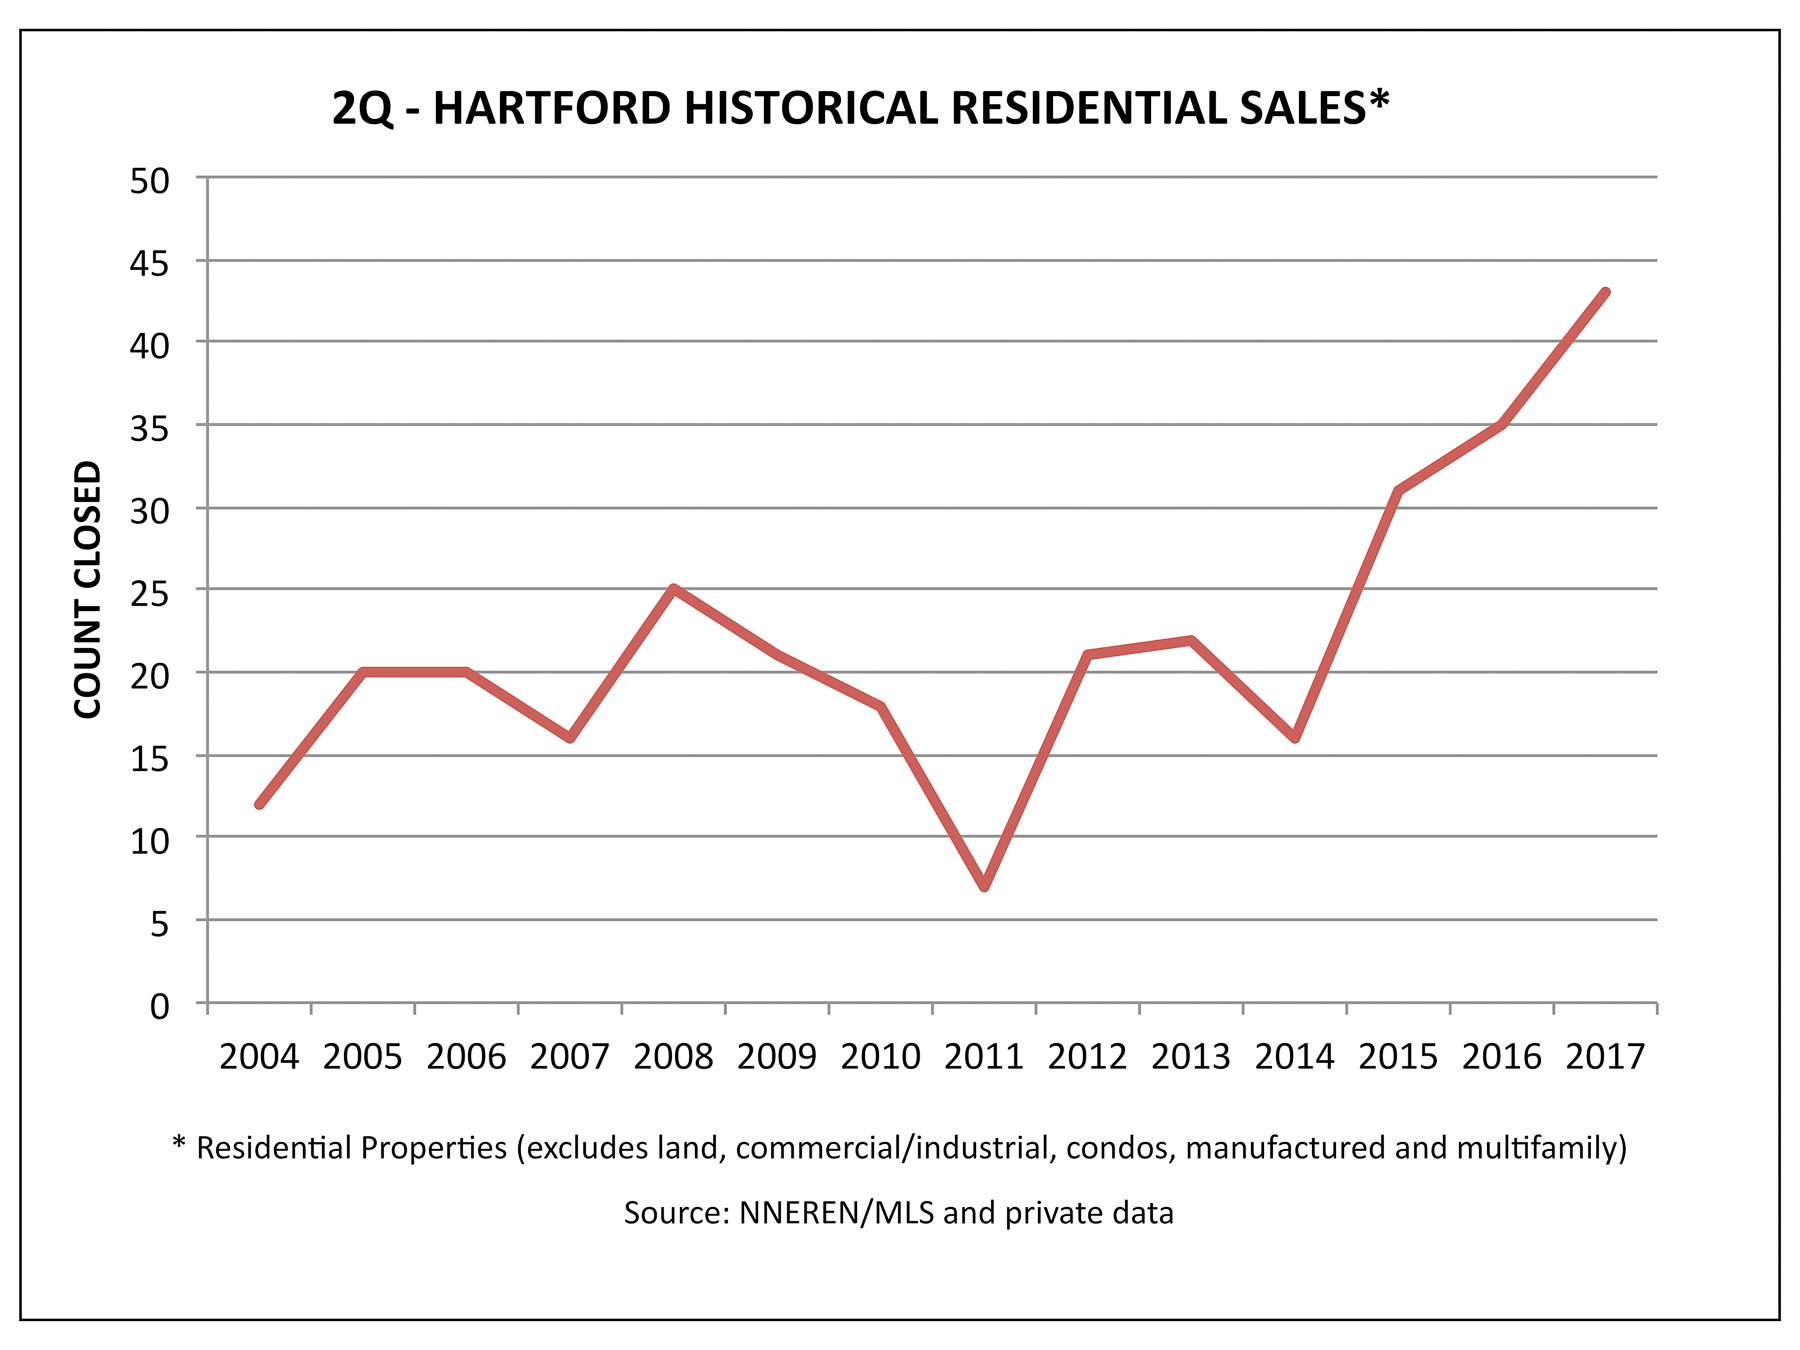 Hartford VT Real Estate - Historical 2Q Home Sales